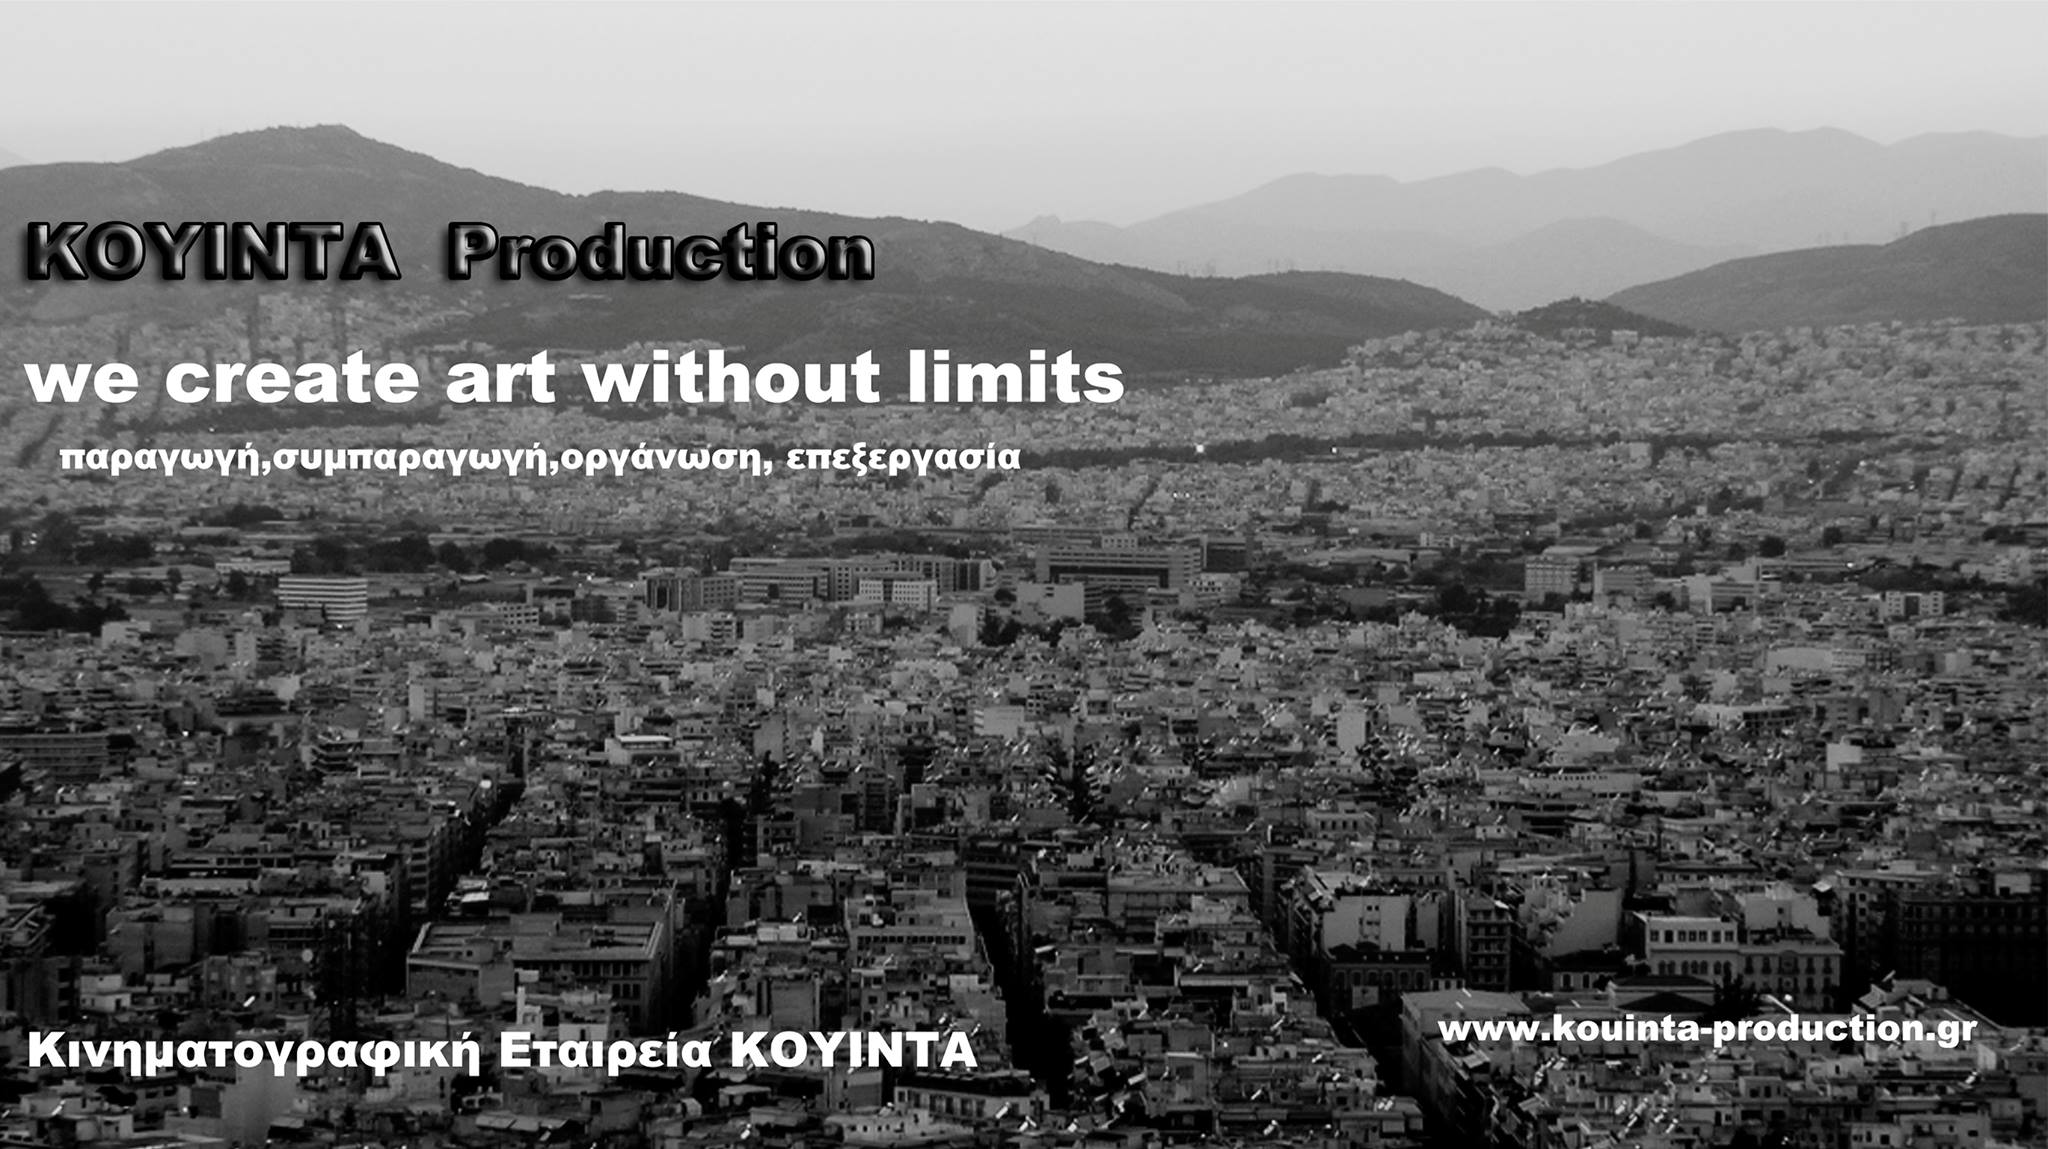 KOYINTA Production